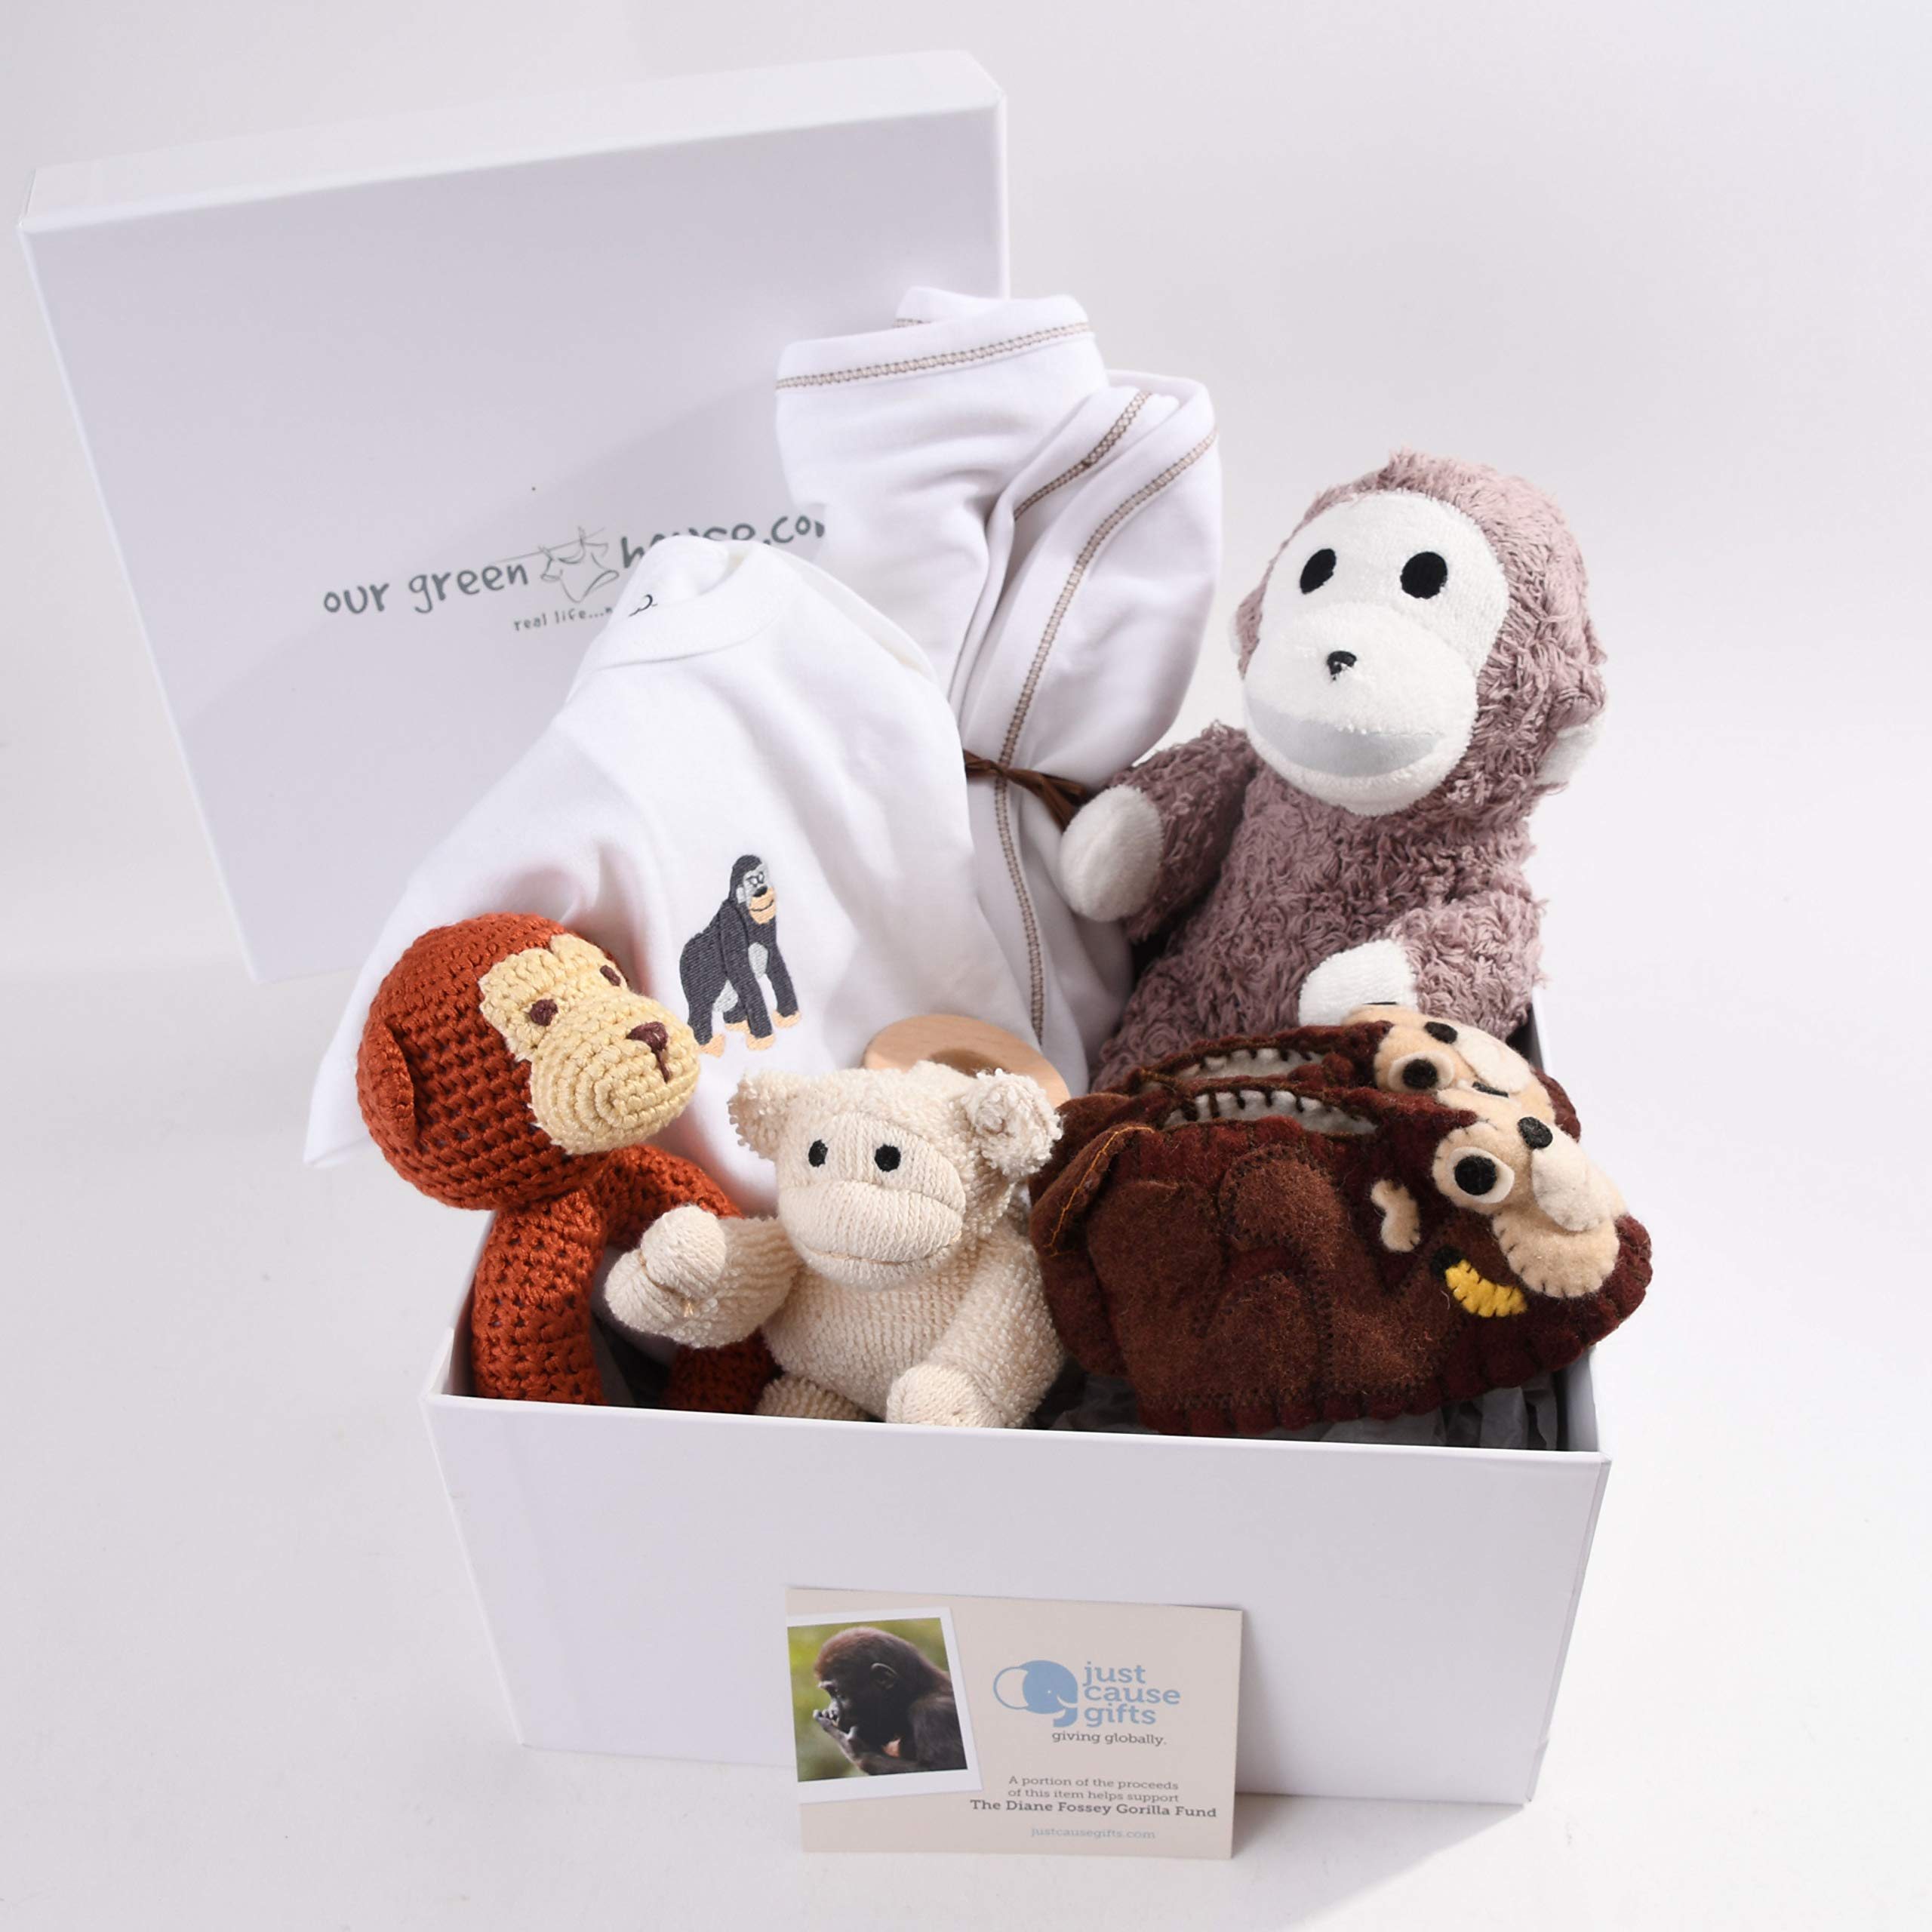 Baby Gifts That Give Back - Save The Gorillas Organic Toys and Clothes for Baby (6-12 Months)